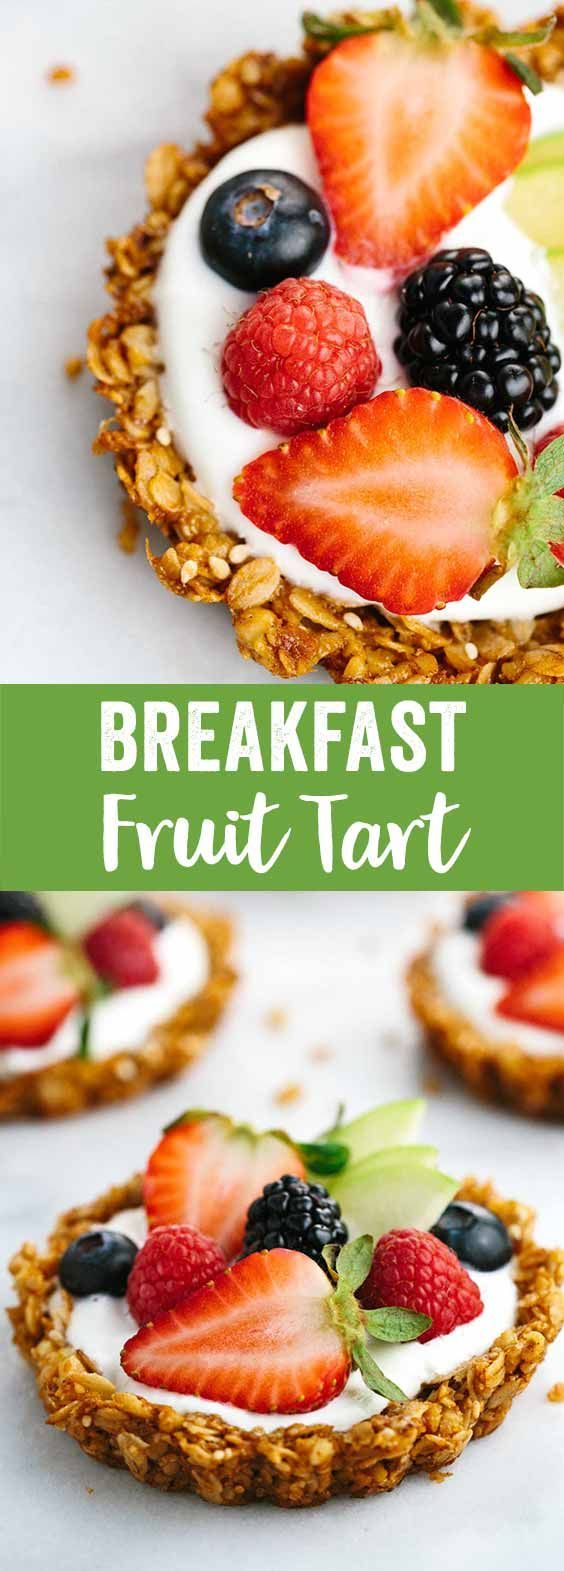 Breakfast Granola Fruit Tart with Yogurt Recipe - Customize your favorite fillings and toppings in the crunchy granola crust!  via /foodiegavin/